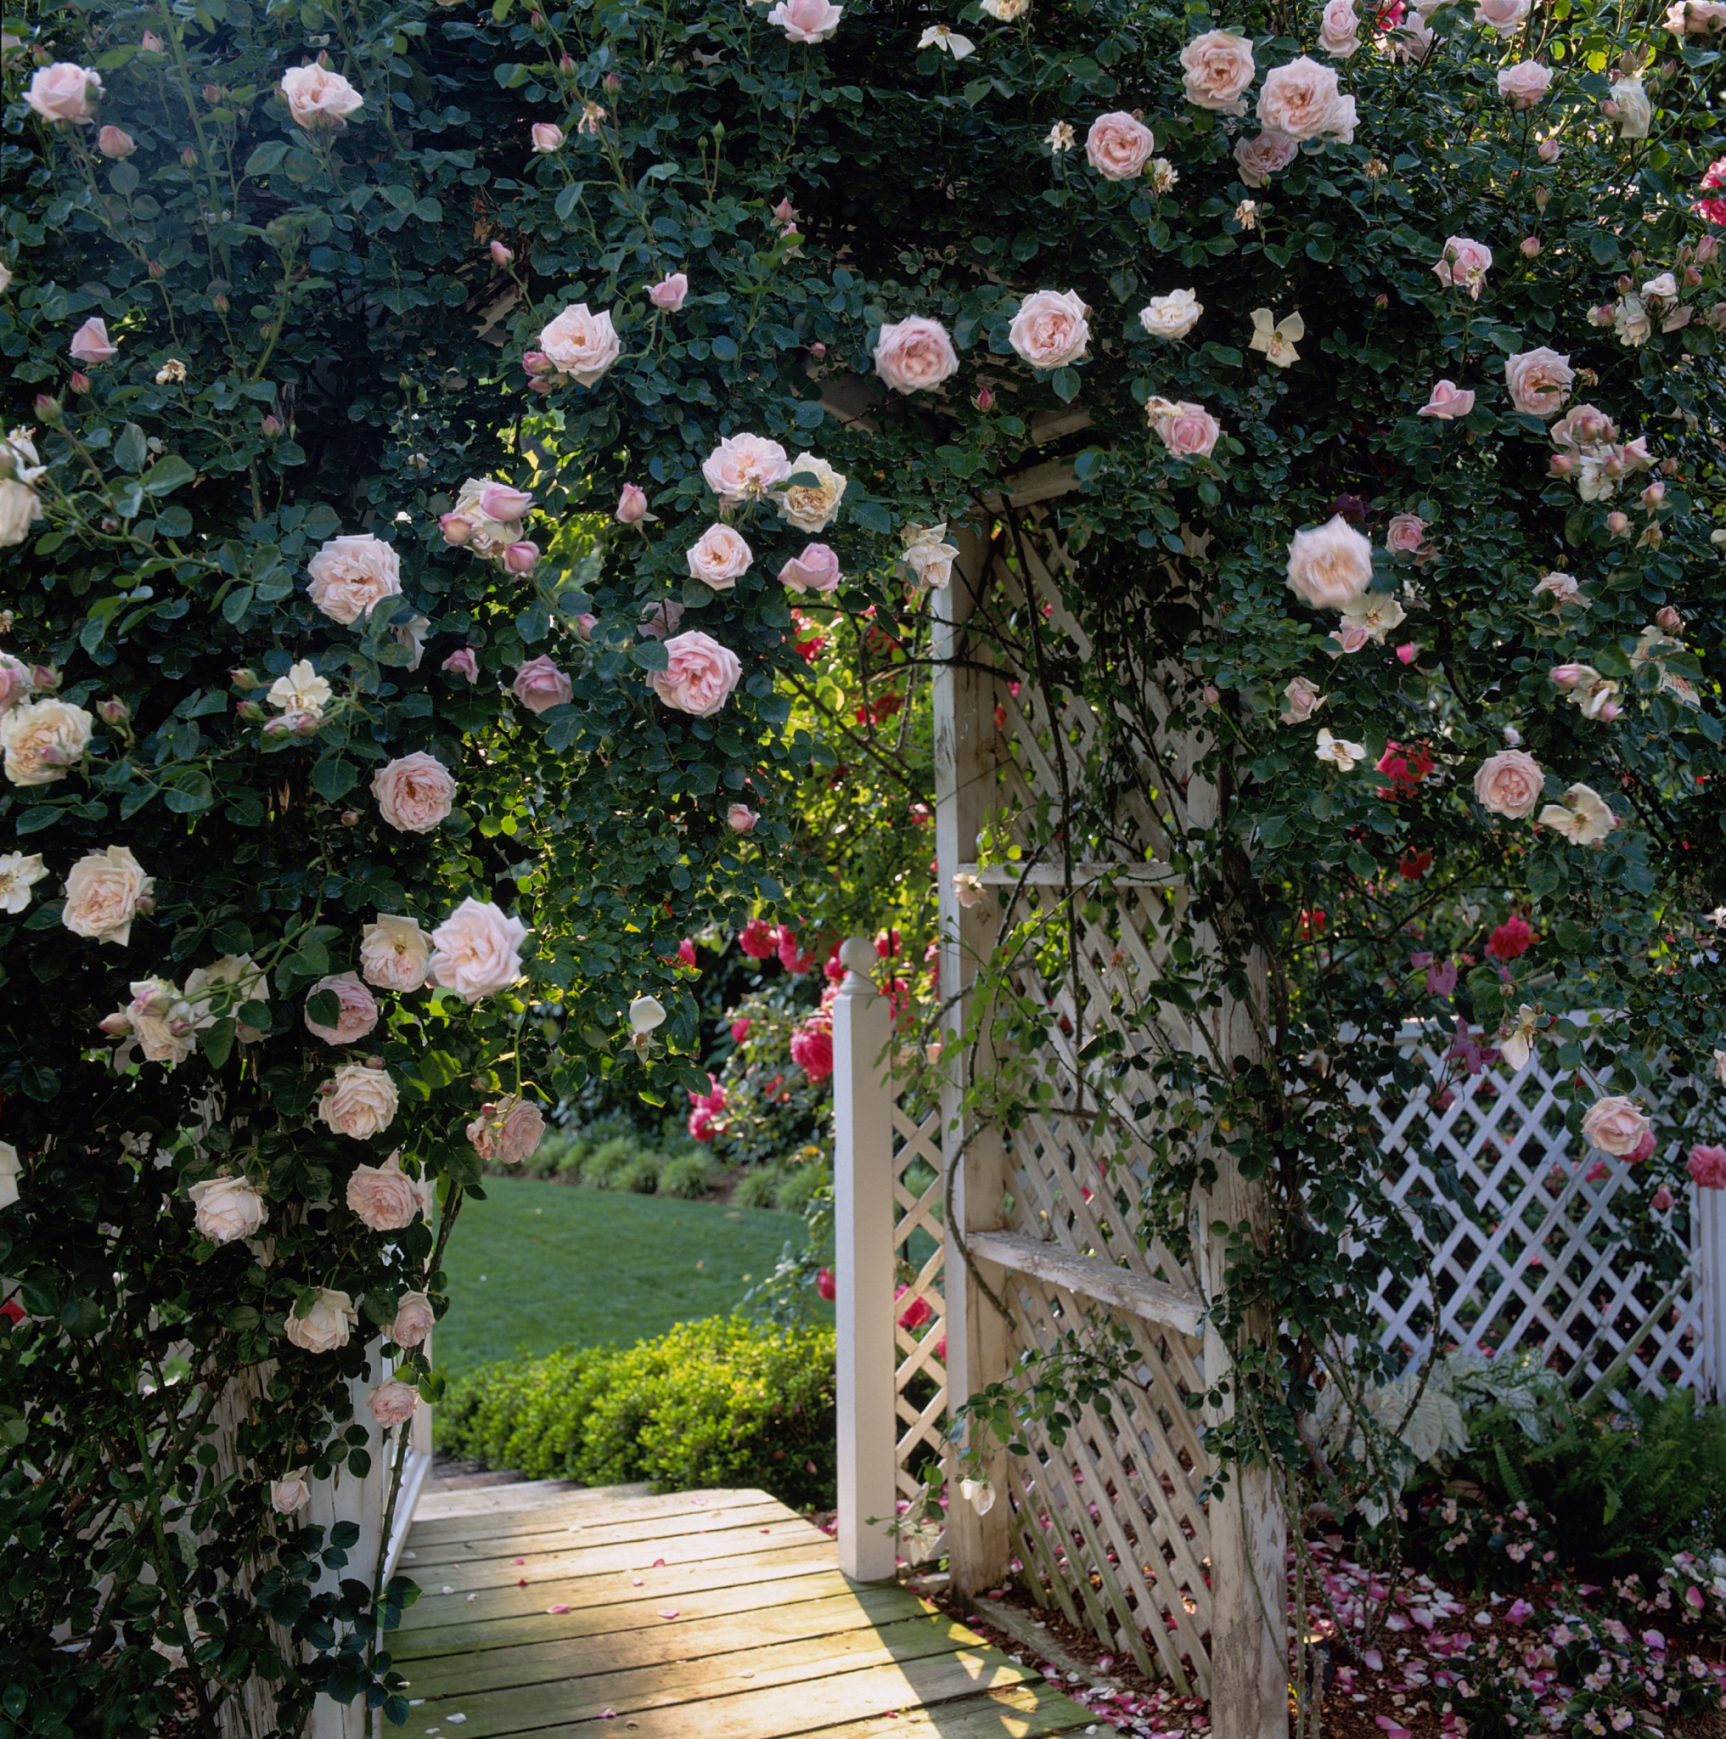 Flower garden pictures ideas - Flower Garden Pictures Ideas 49